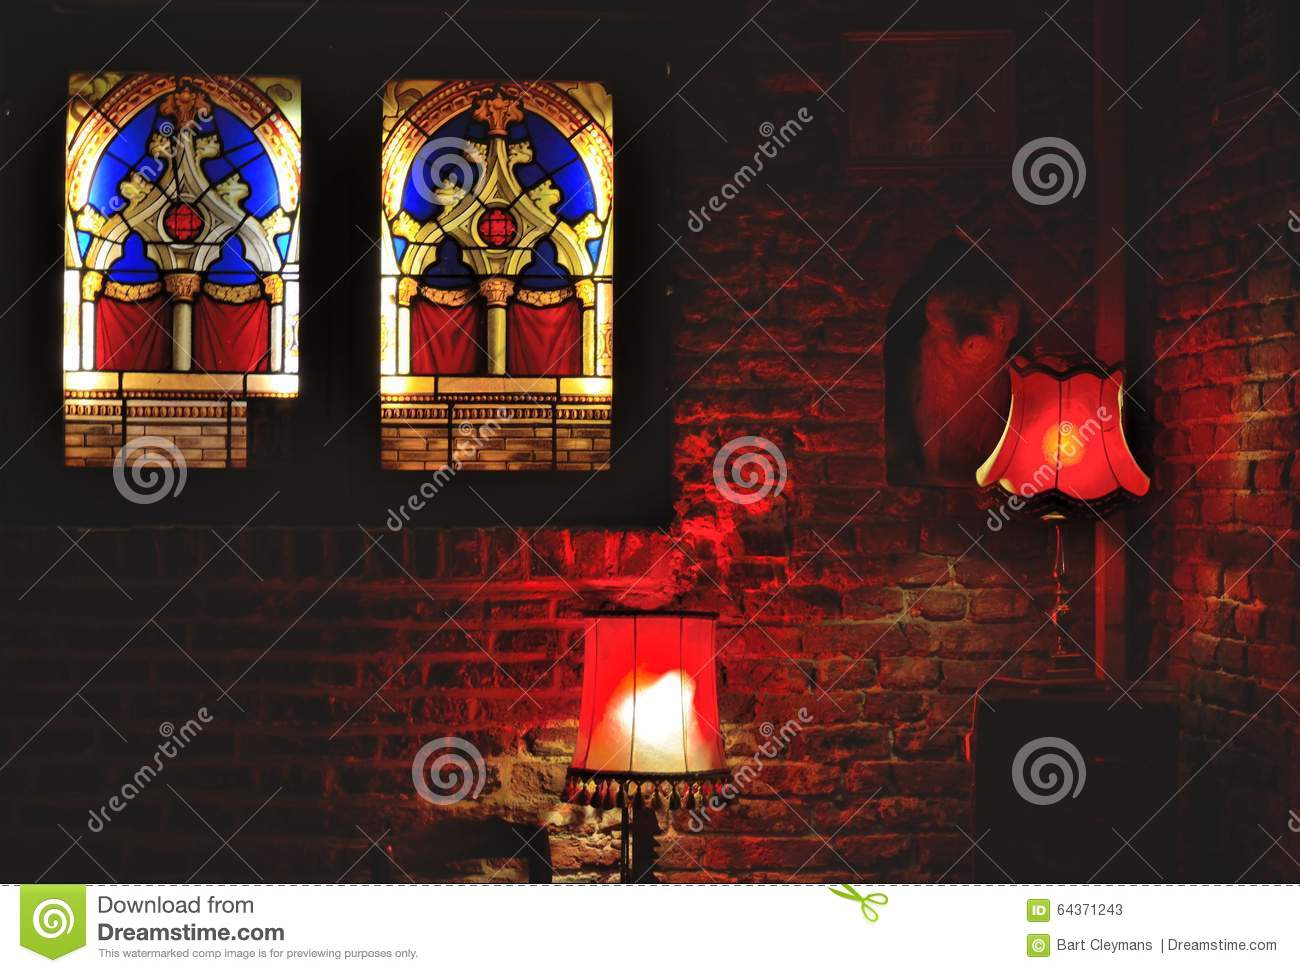 Bar scene, lustres in red and glass stained window